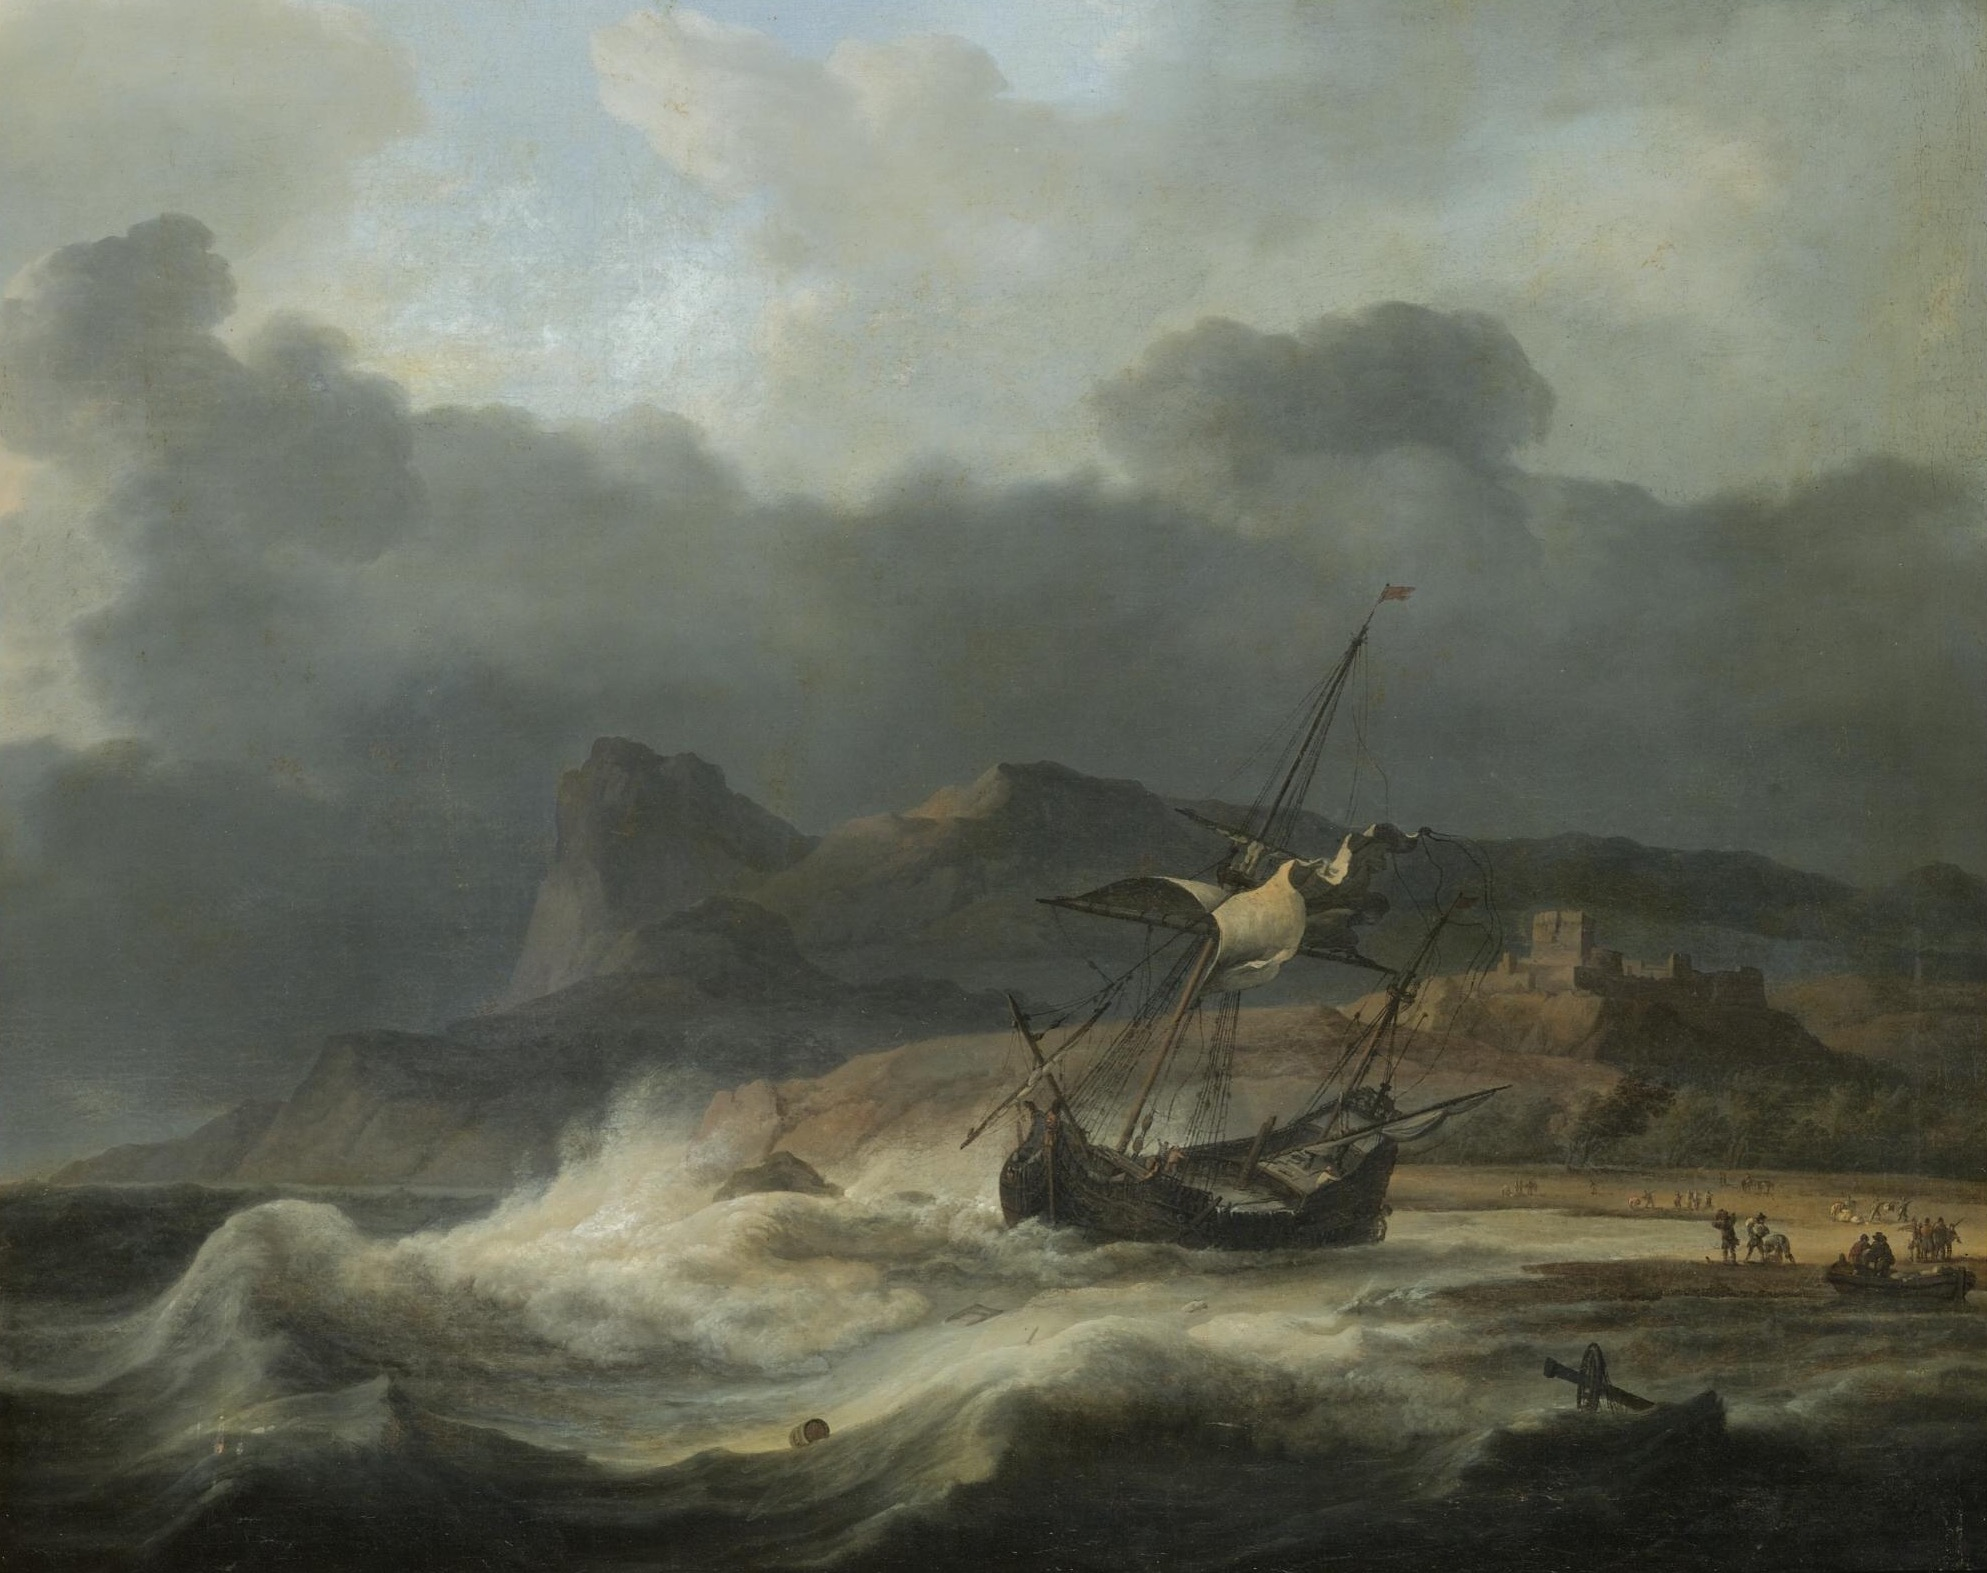 A Mountainous Coastal Landscape with a Ship Beached in a Storm, by Aernout Smit